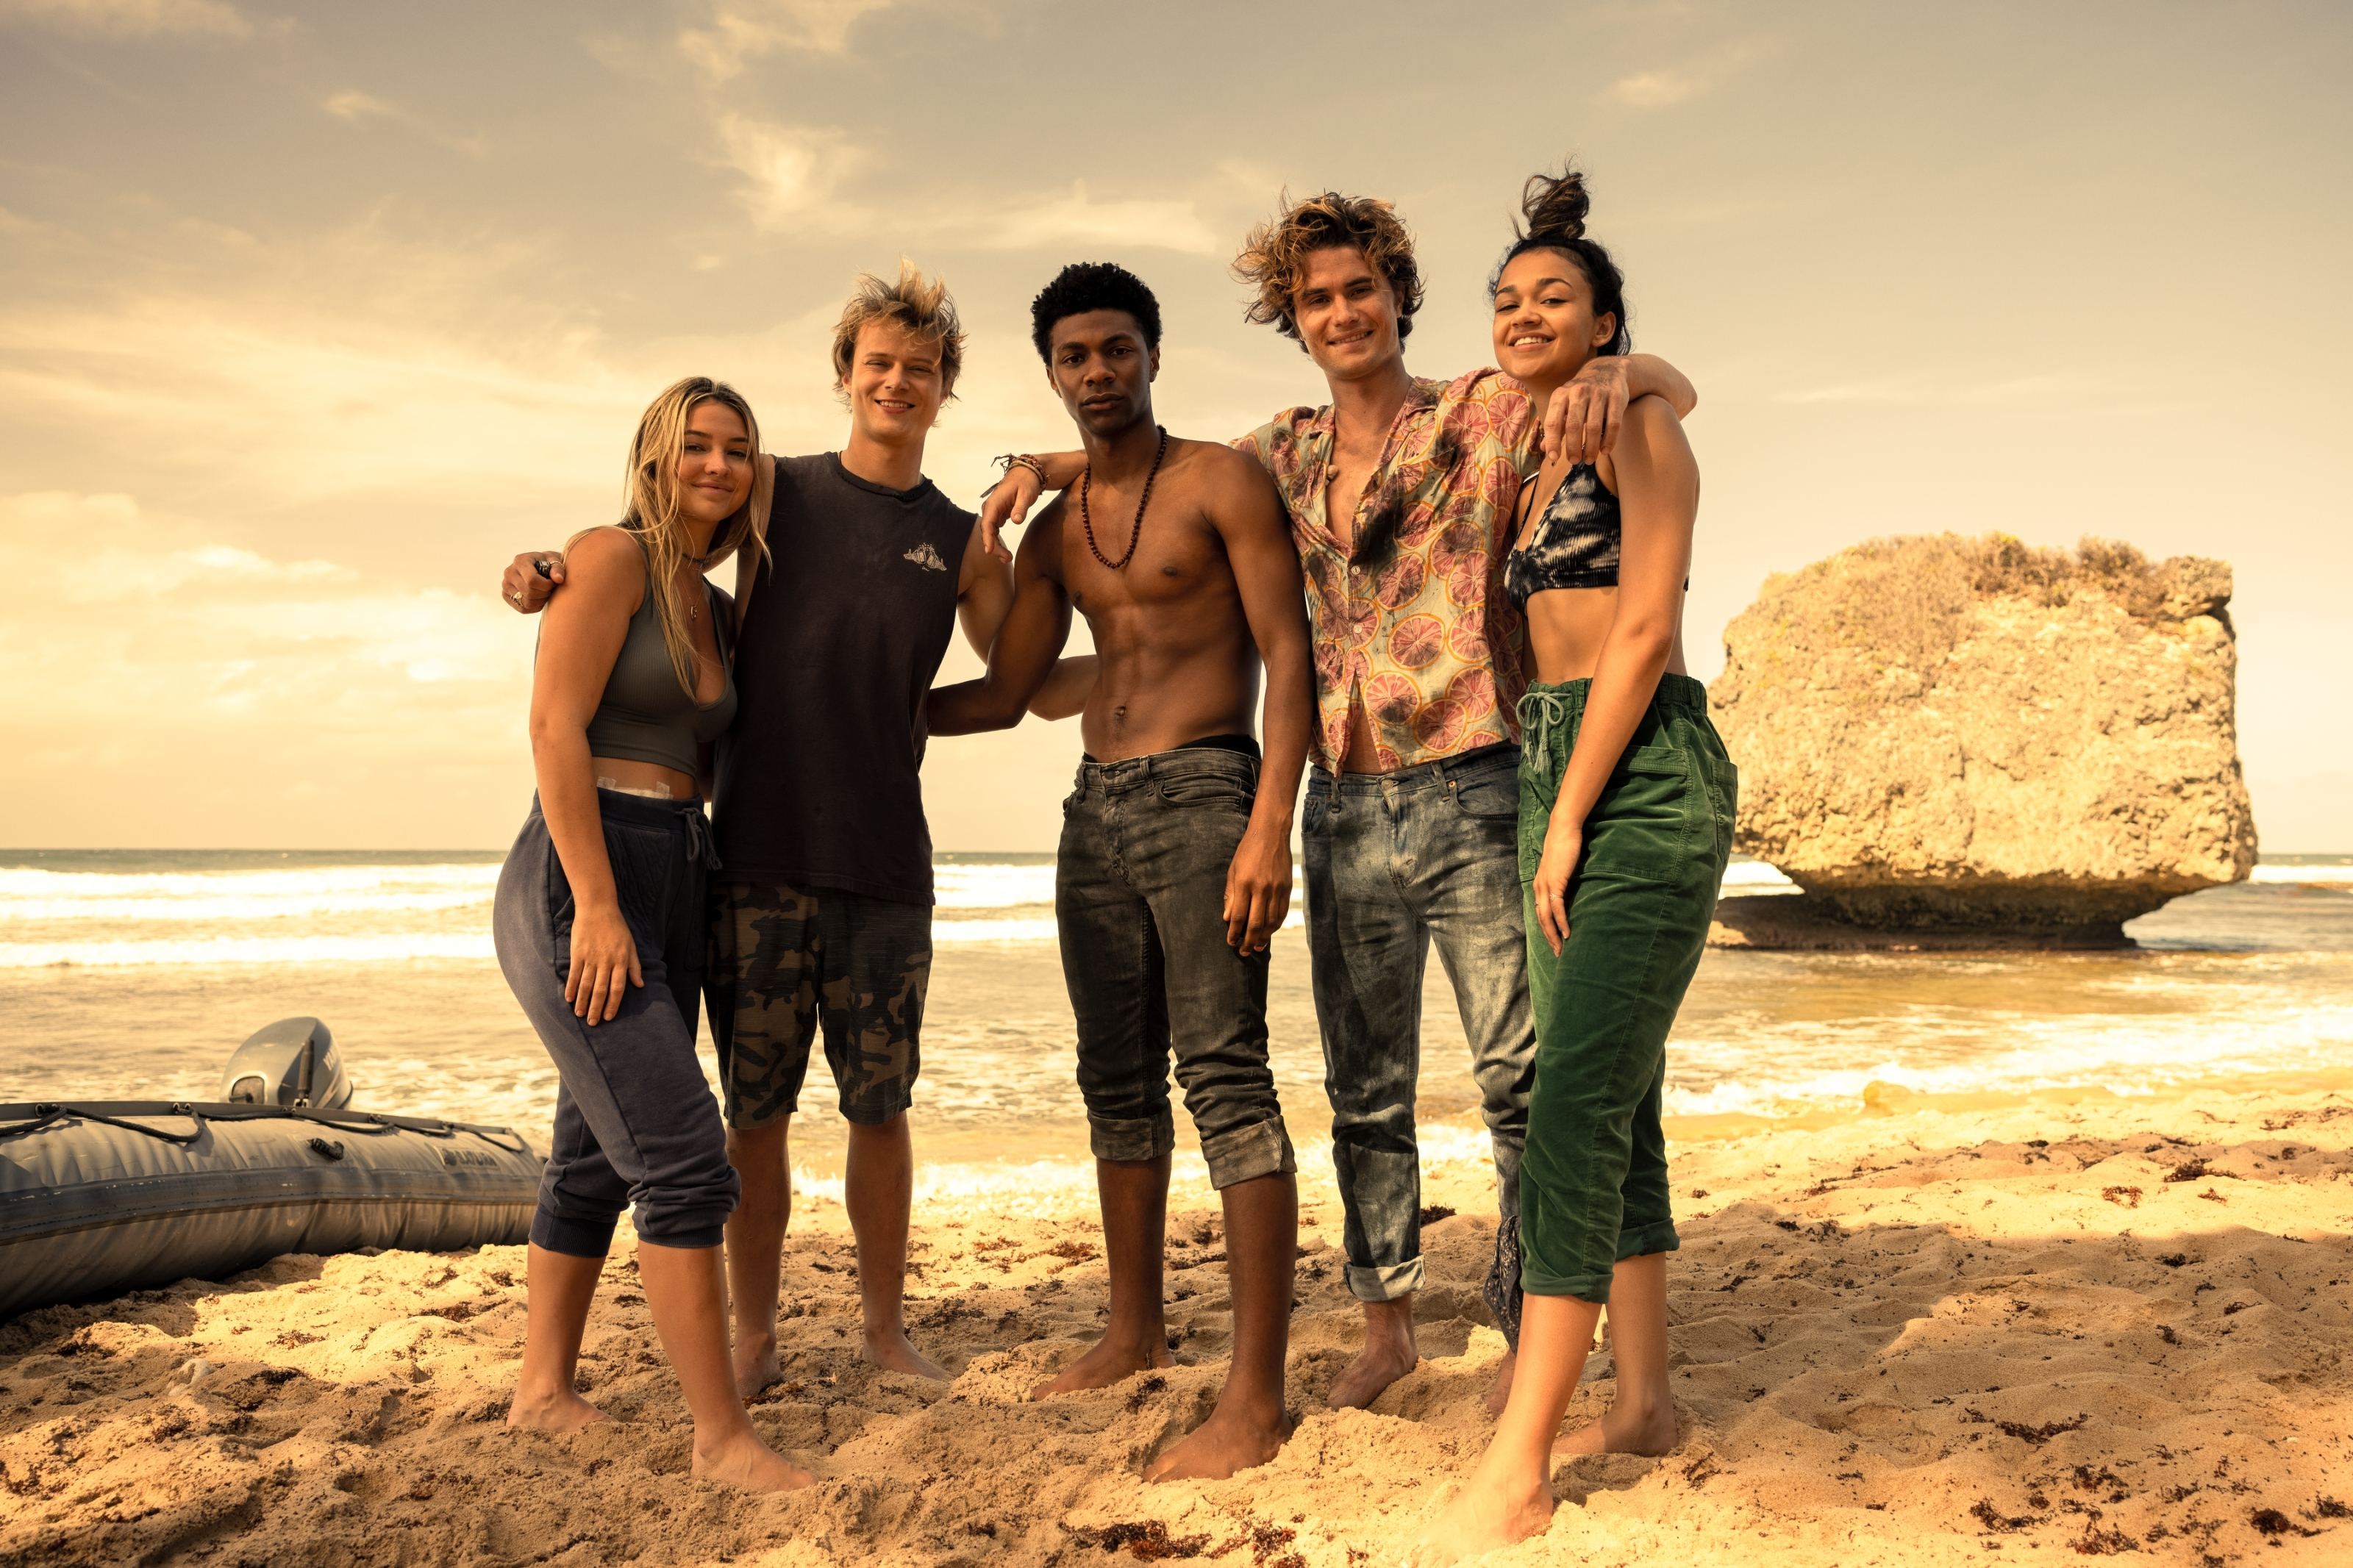 Outer Banks season 3 release date updates: Will there be a new season? When  is it coming out?